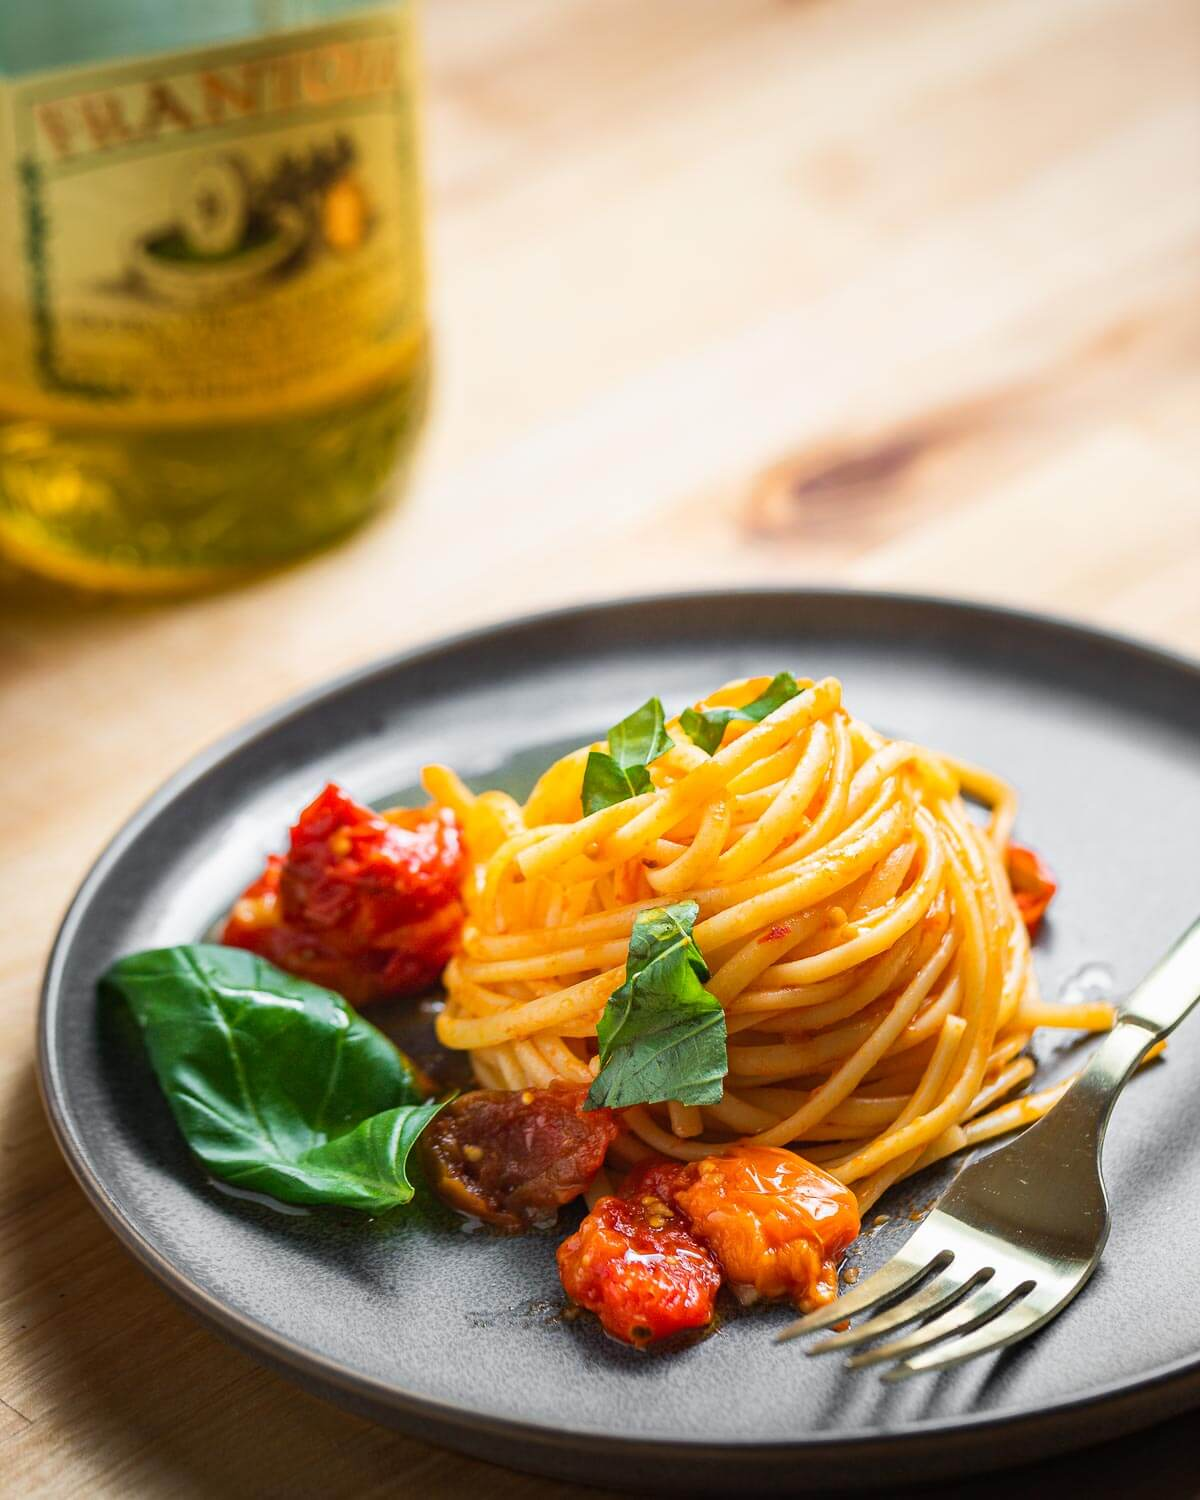 Grey plate with nest of linguine with roasted tomato sauce and bottle of extra virgin olive oil in background.